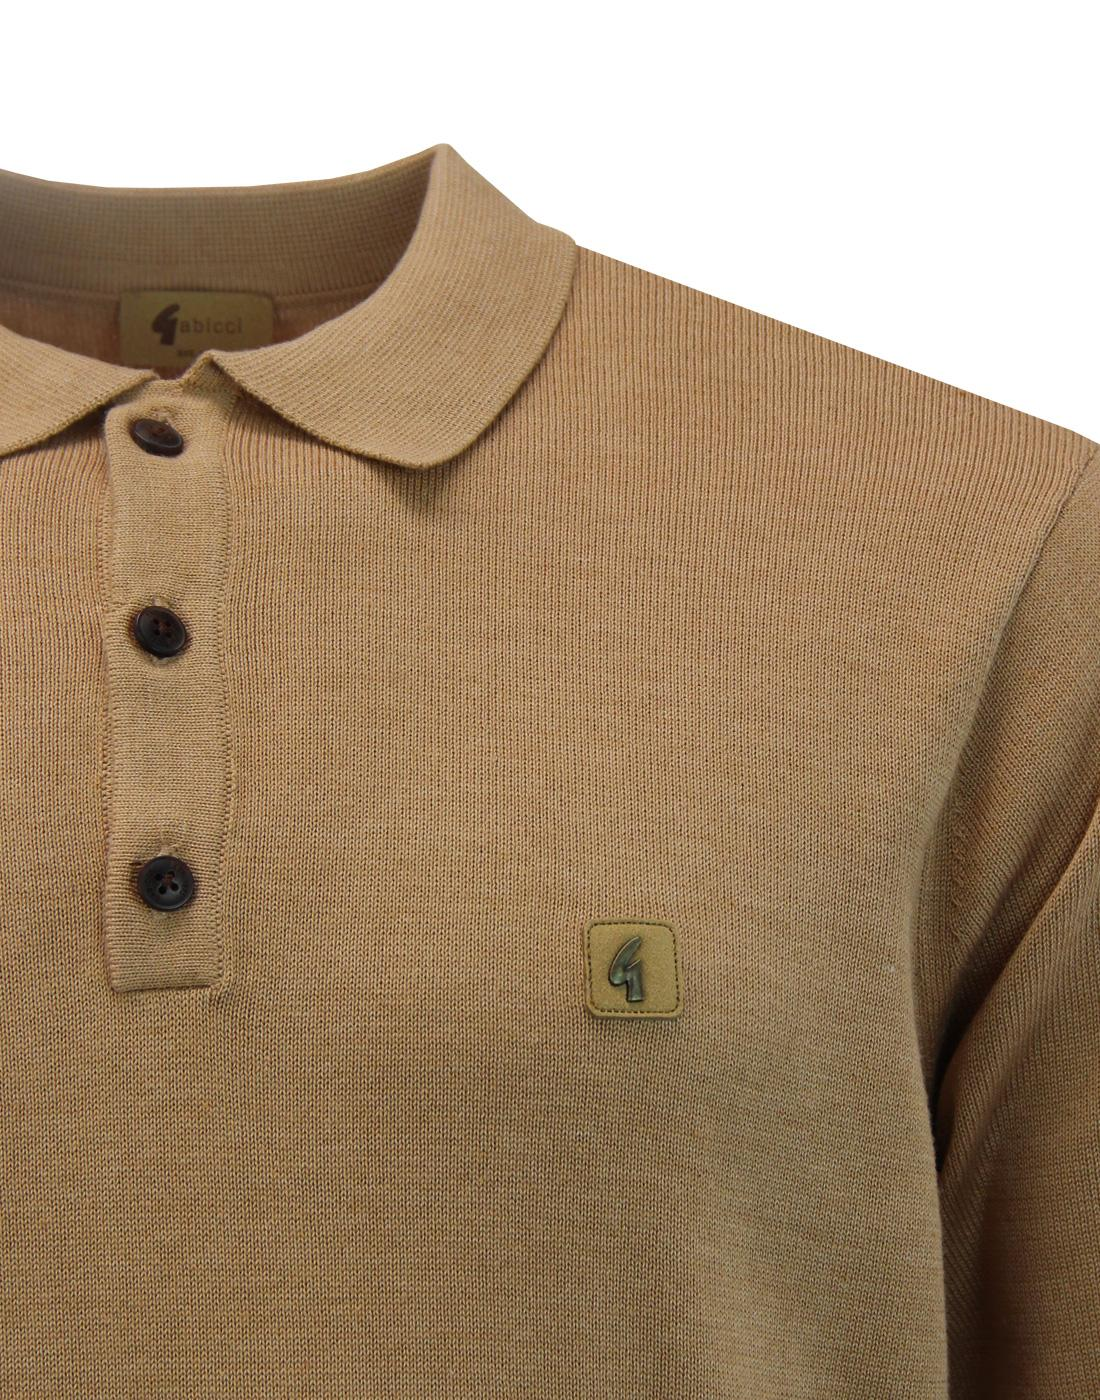 cb6a970ed GABICCI VINTAGE Francesco Retro 60s Mod Knitted Polo Top in Honey